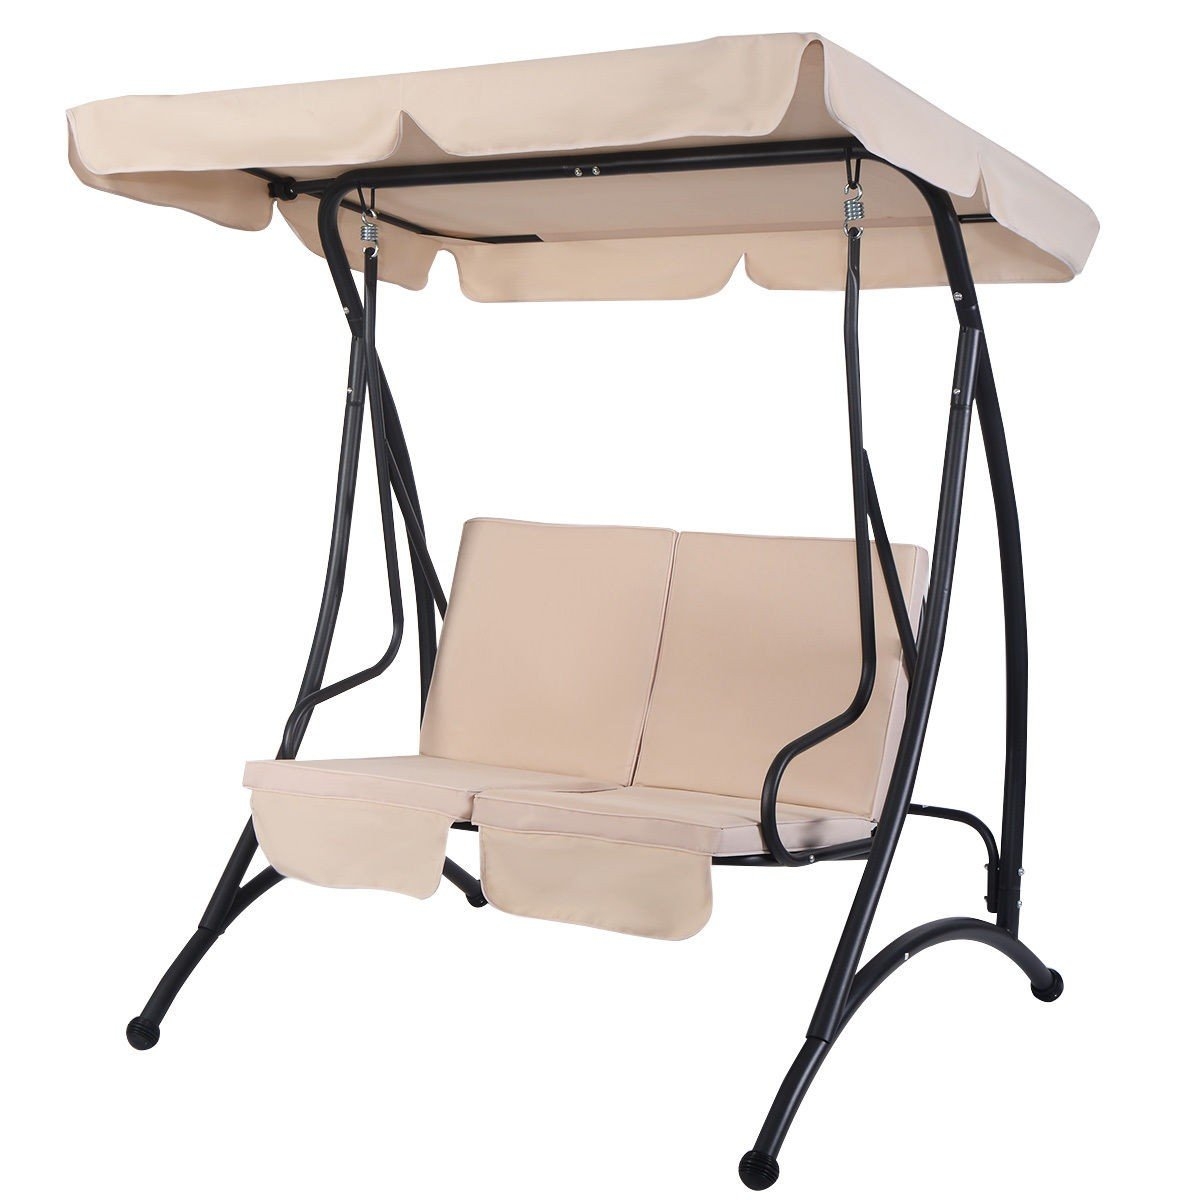 2 person patio canopy swing chair in 2020 canopy swing